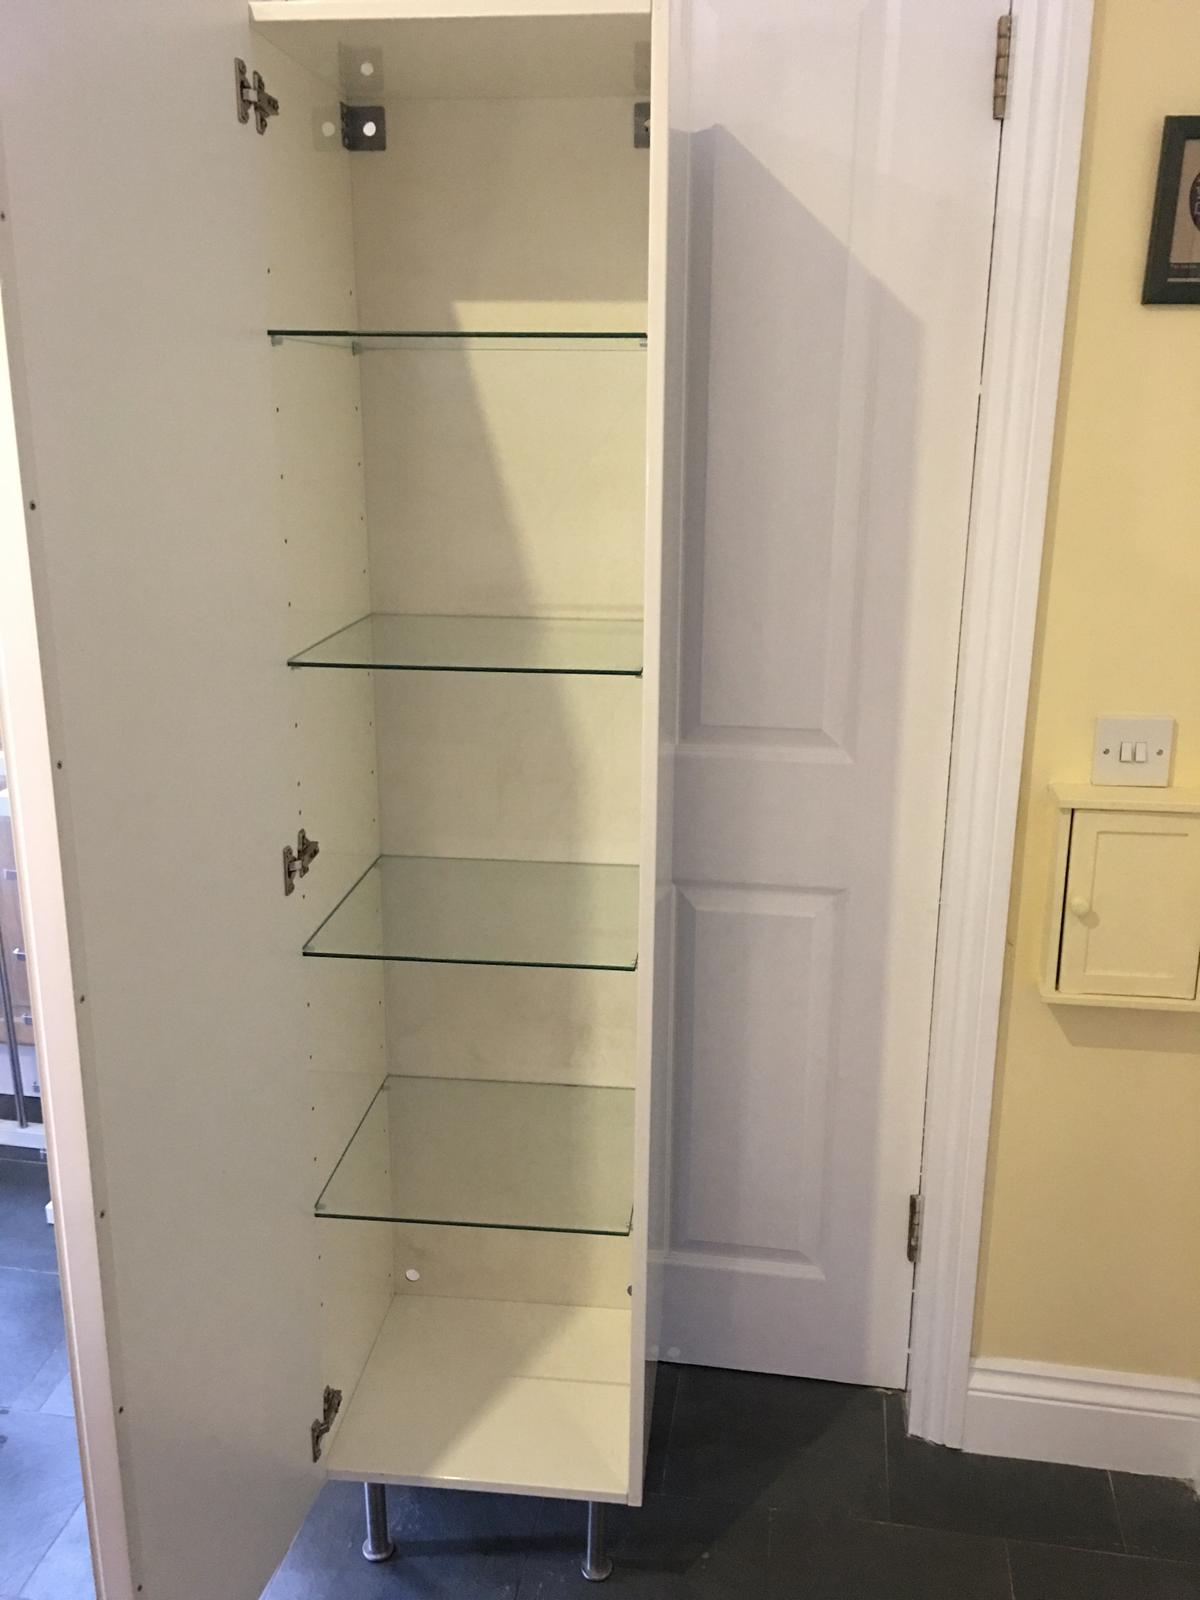 Excellent White Gloss Ikea Godmorgan Bathroom Cabinet In Bn3 Hove For Home Interior And Landscaping Ponolsignezvosmurscom